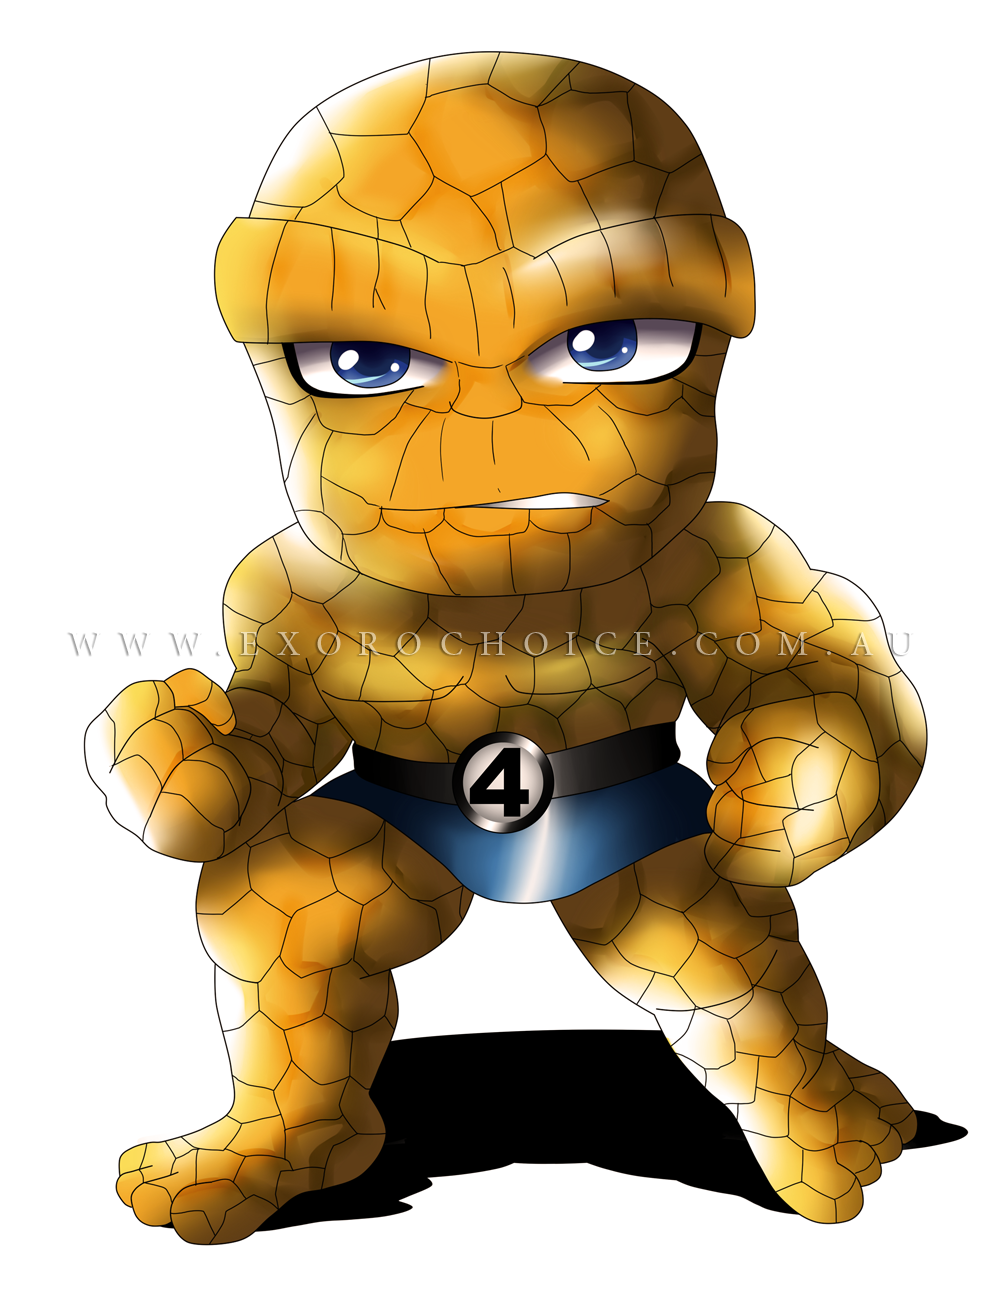 Exoro Choice S Superheroes Chibis Thing Chibi For Digital Download Copy You May Visit Our Site Http Exorochoi Chibi Characters Cute Comics Marvel Kids